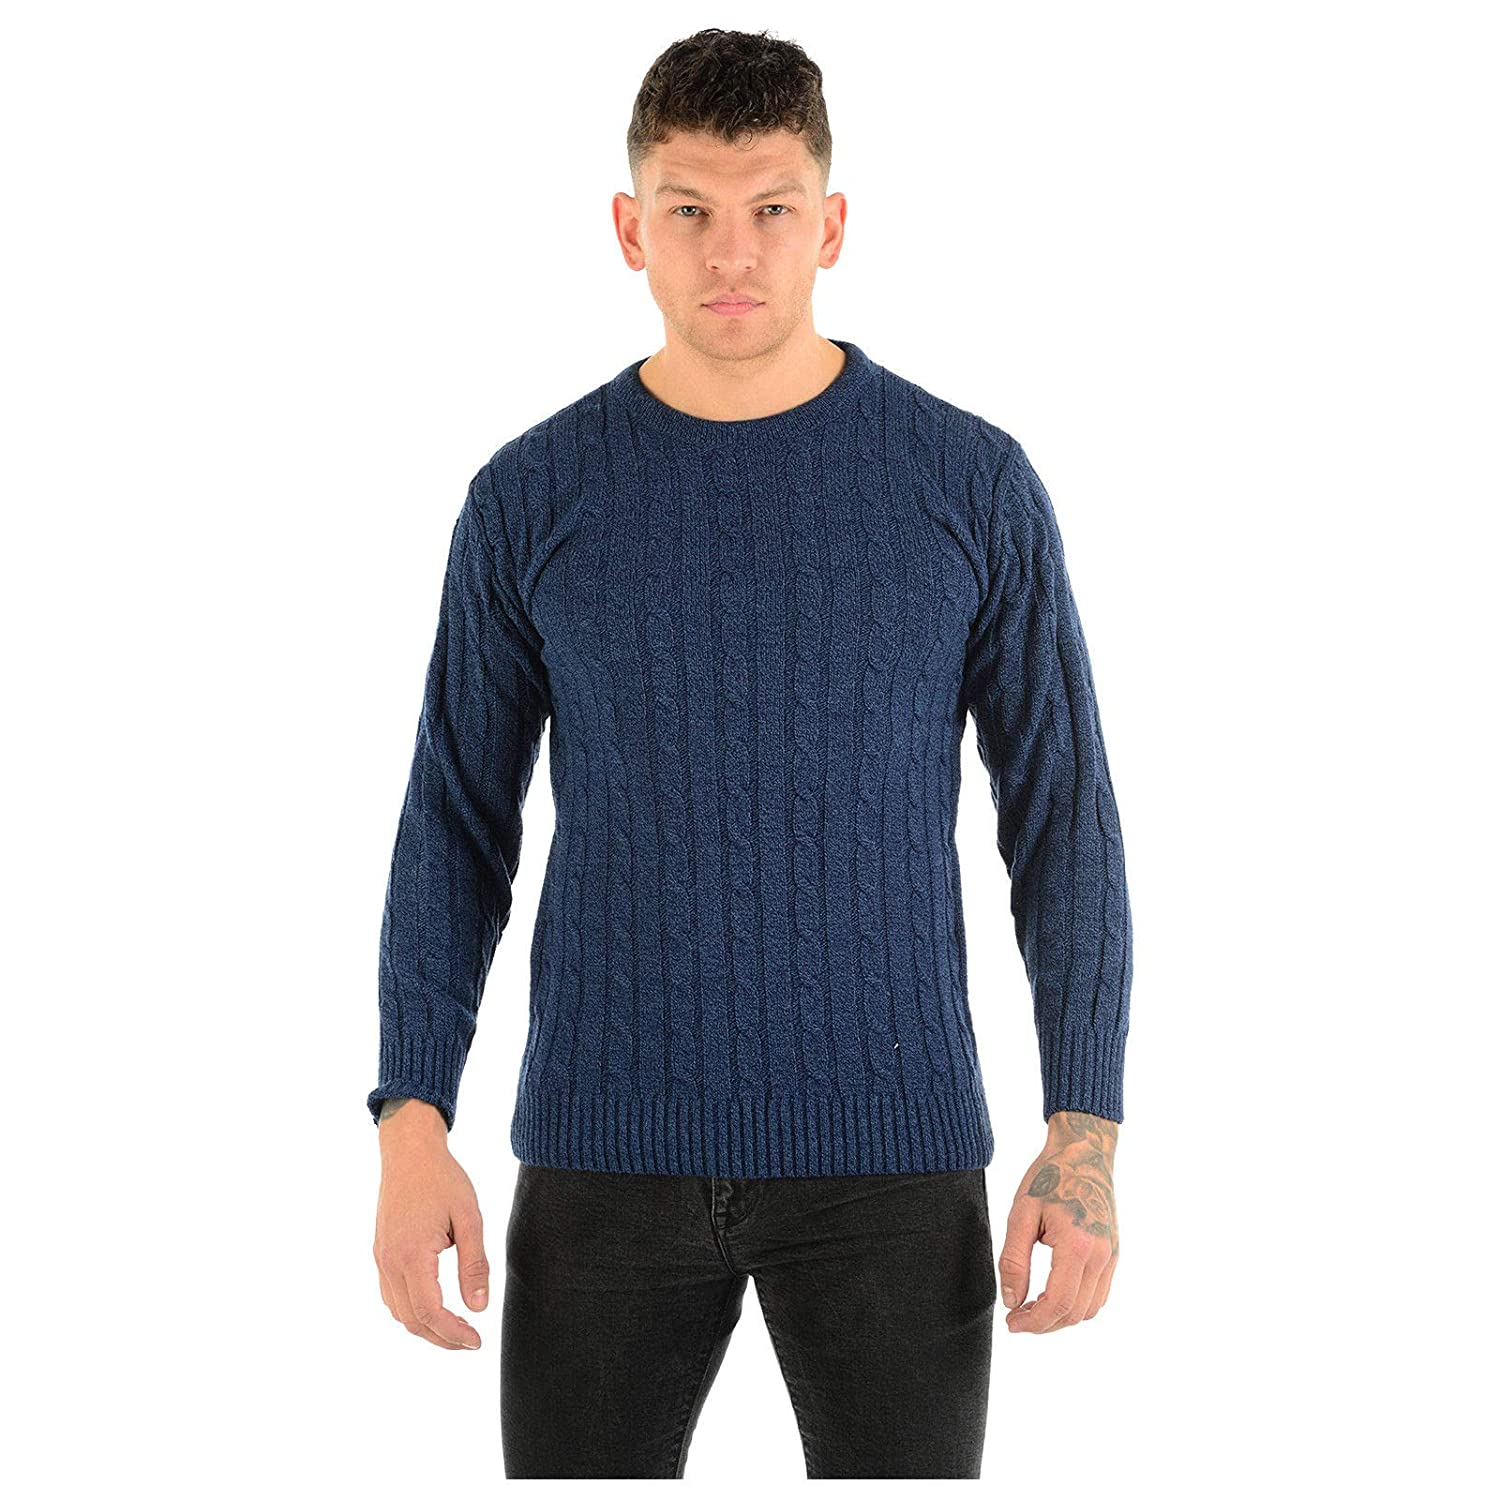 MyShoeStore Mens Classic Style Chunky Cable Knit Jumper Plain Casual Design Pull On Thick Warm Winter Pullover Sweater Knitted Crew Neck Long Sleeve Knitwear Top M-2XL